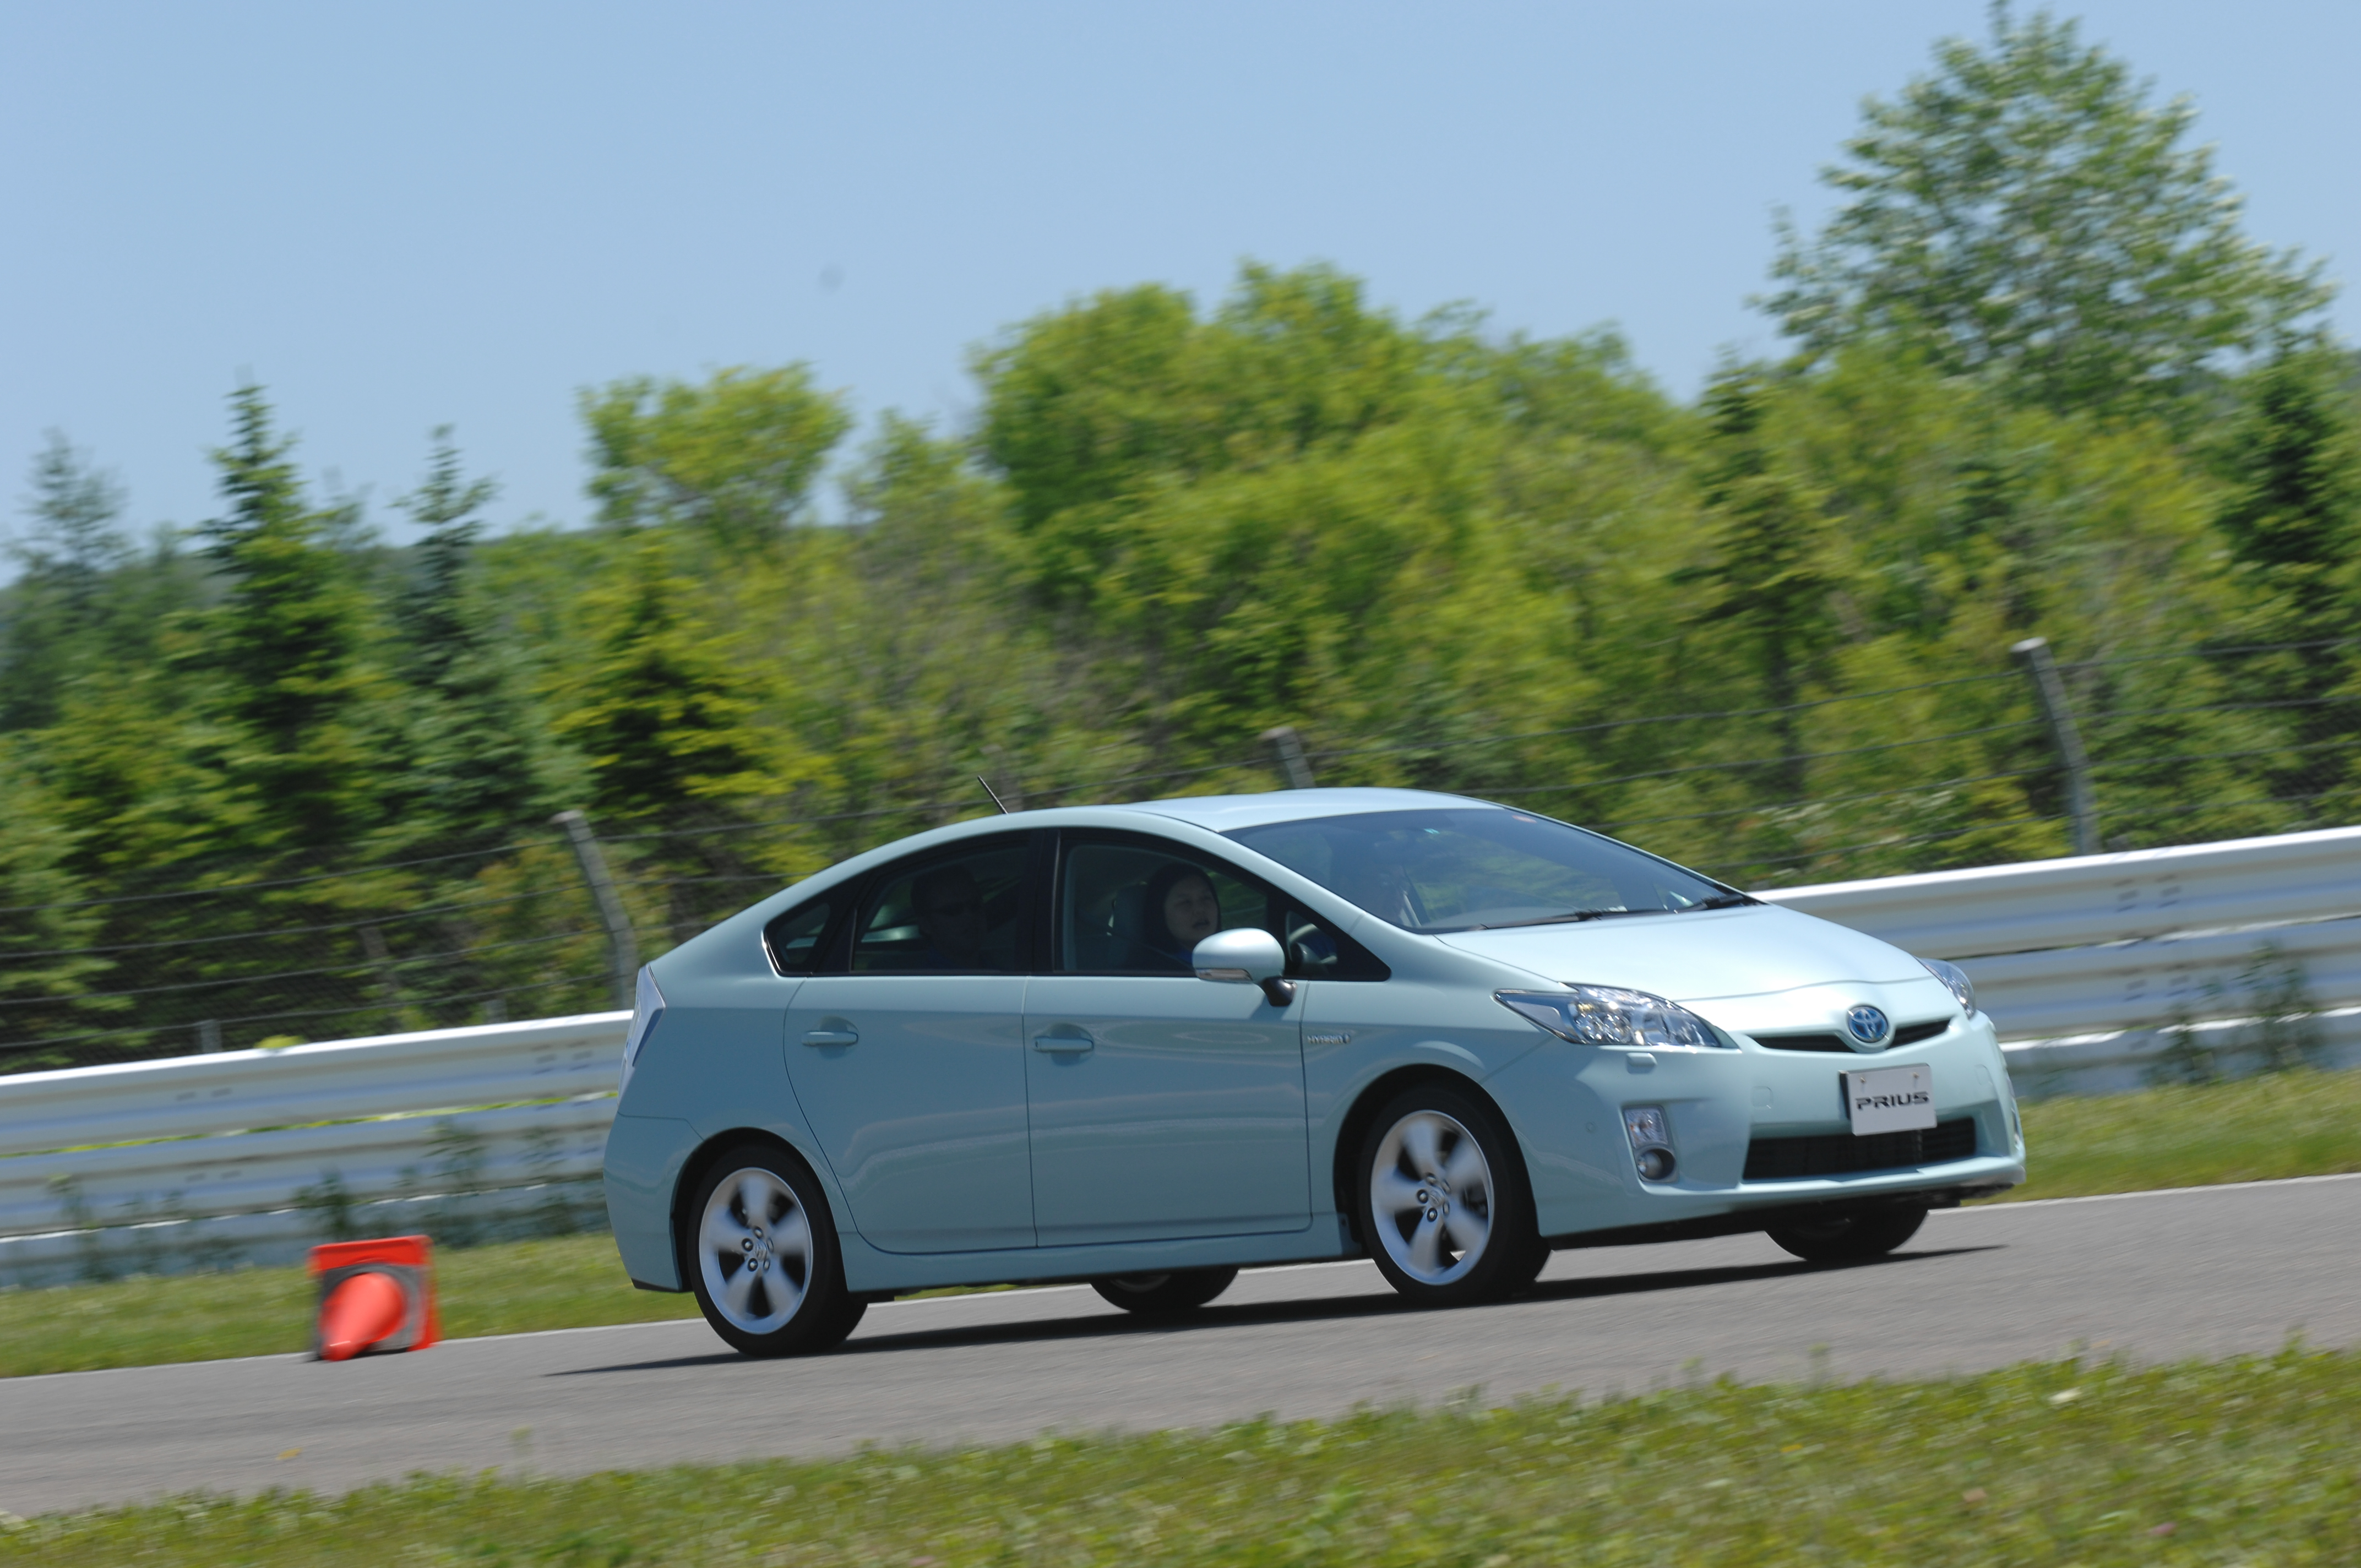 3rd generation Toyota Prius: first impressions Image 155297